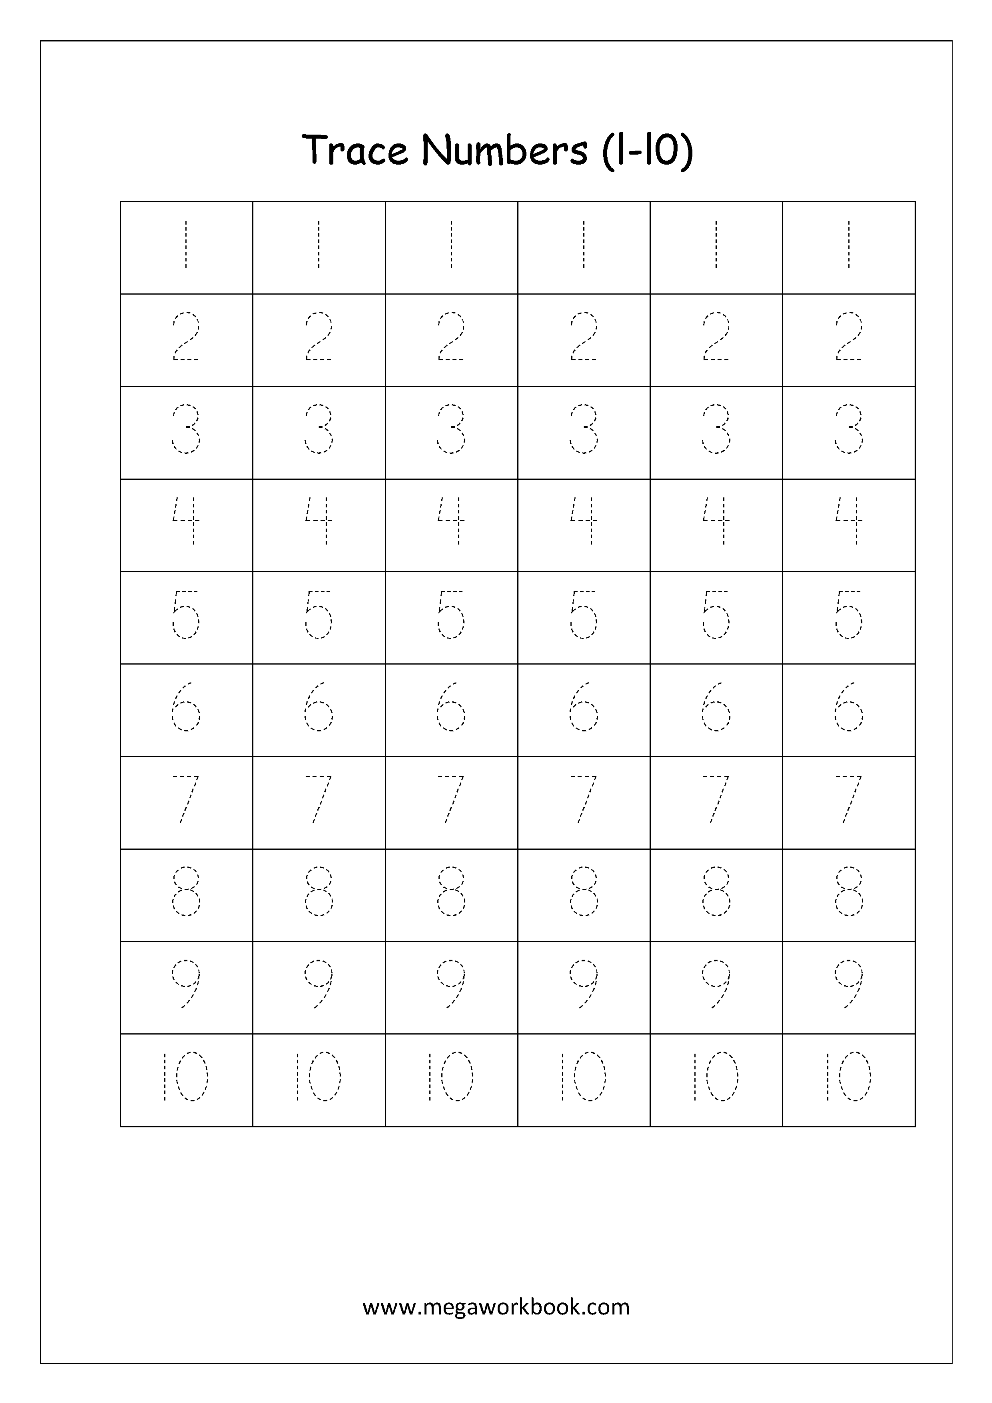 Free Math Worksheets - Number Tracing And Writing (1-10